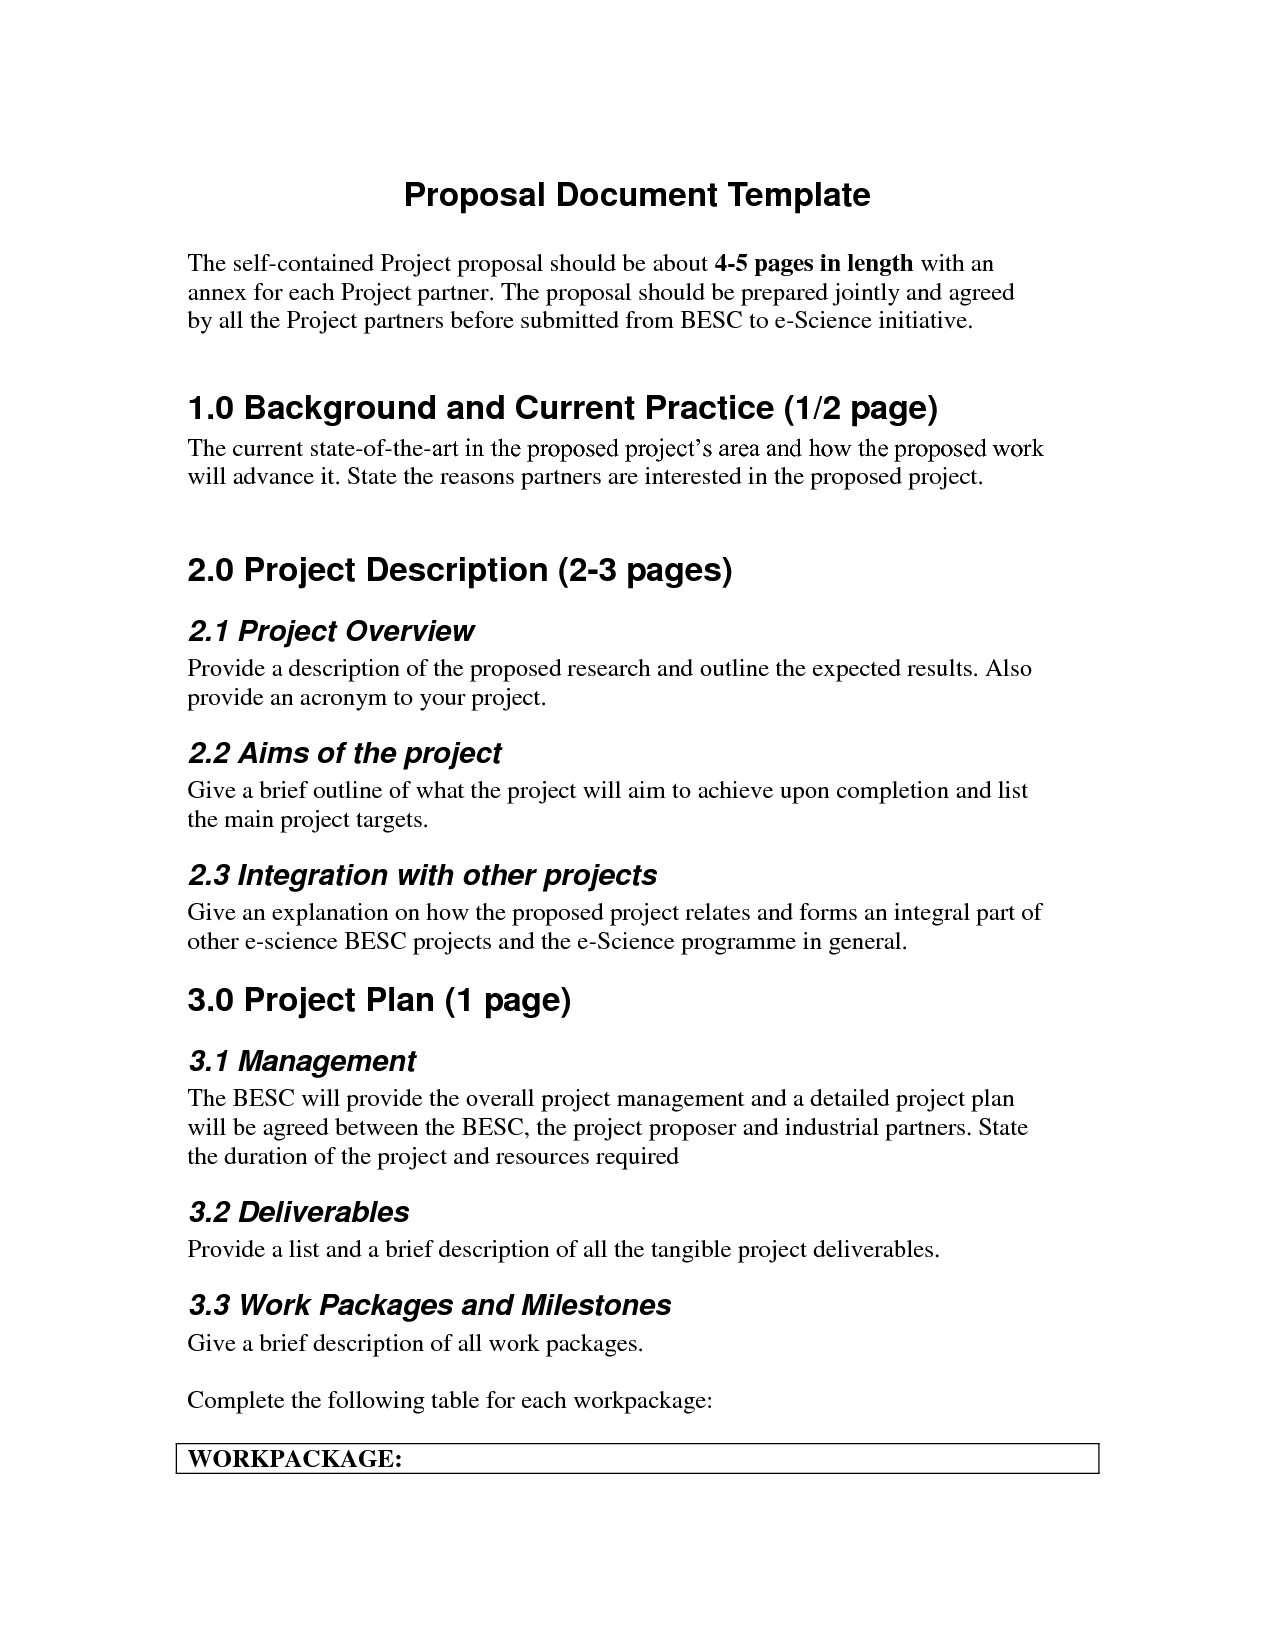 English Essay Books Essay Proposal Template Proposal Essay Topics Before Students Write A  College Research Paper Business Essay Structure also Examples Of Essay Papers Essay Proposal Template Proposal Essay Topics Before Students  Good High School Essays